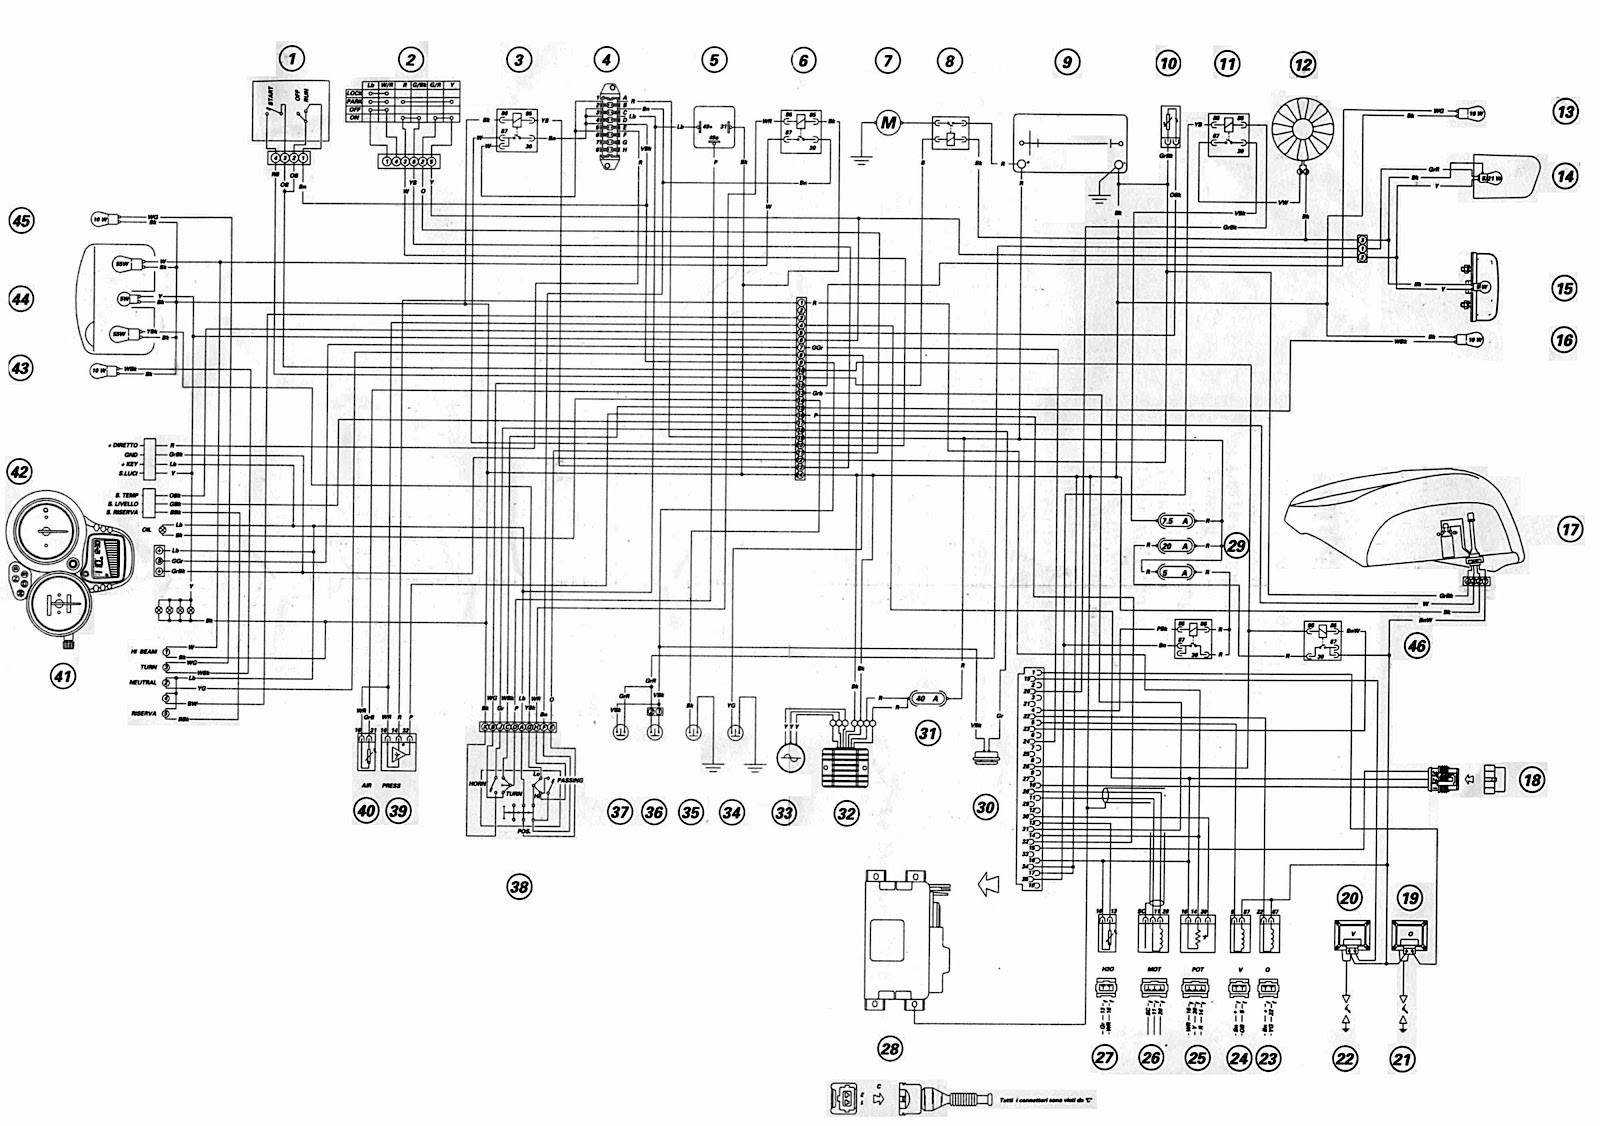 Drz400e Wiring Diagram Electrical Diagrams Ltz 400 Cdi Suzuki Drz 250 Trusted